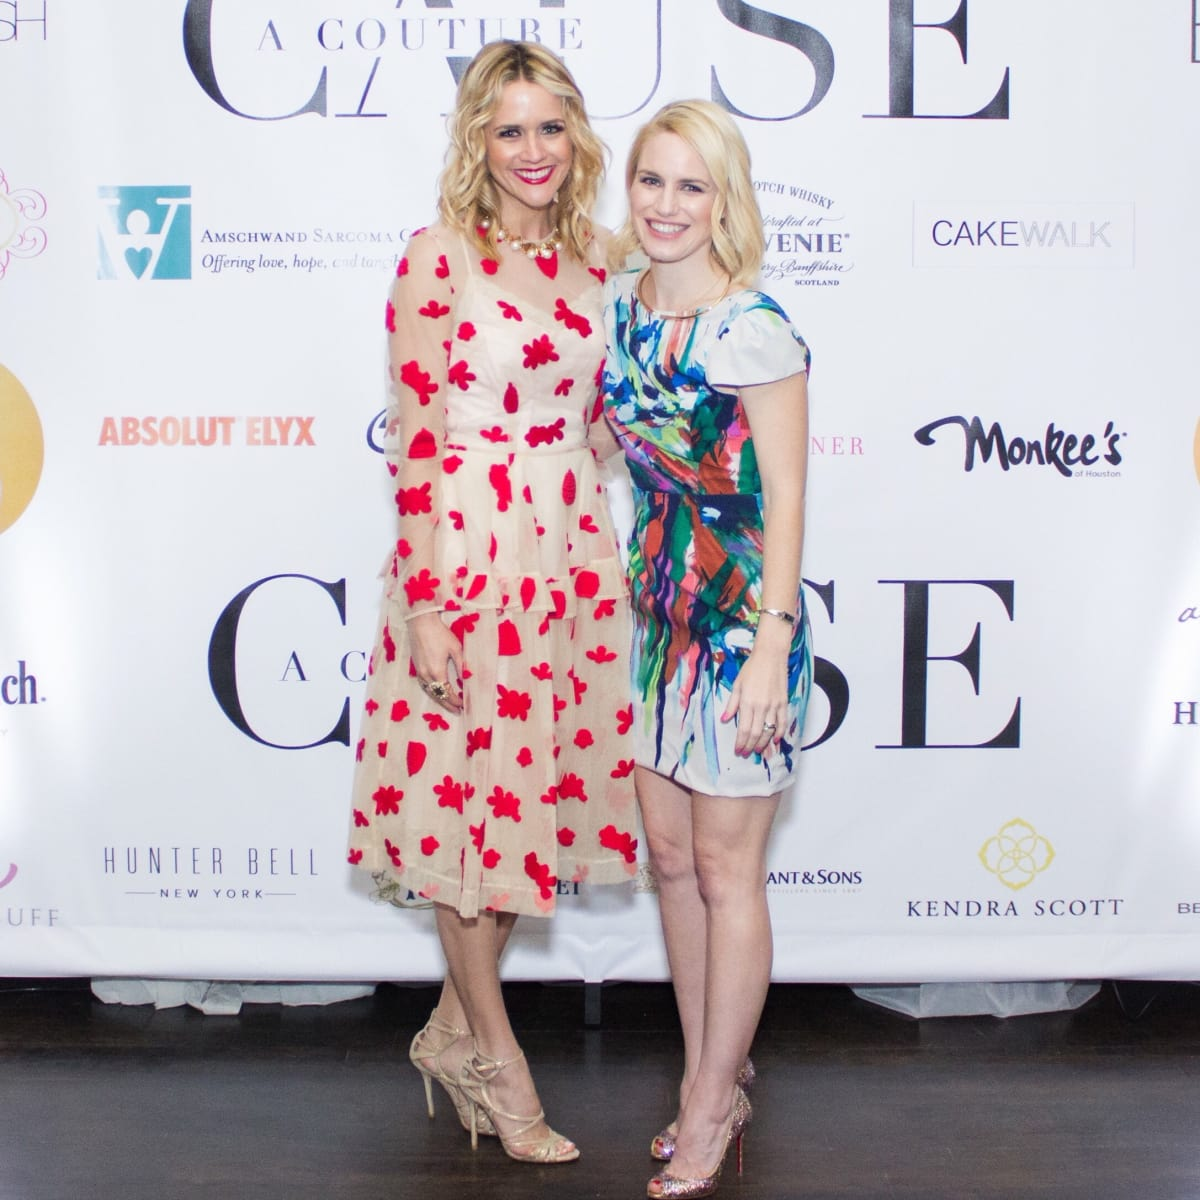 A Couture Cause Lyndsey Zorich, Traci Ling